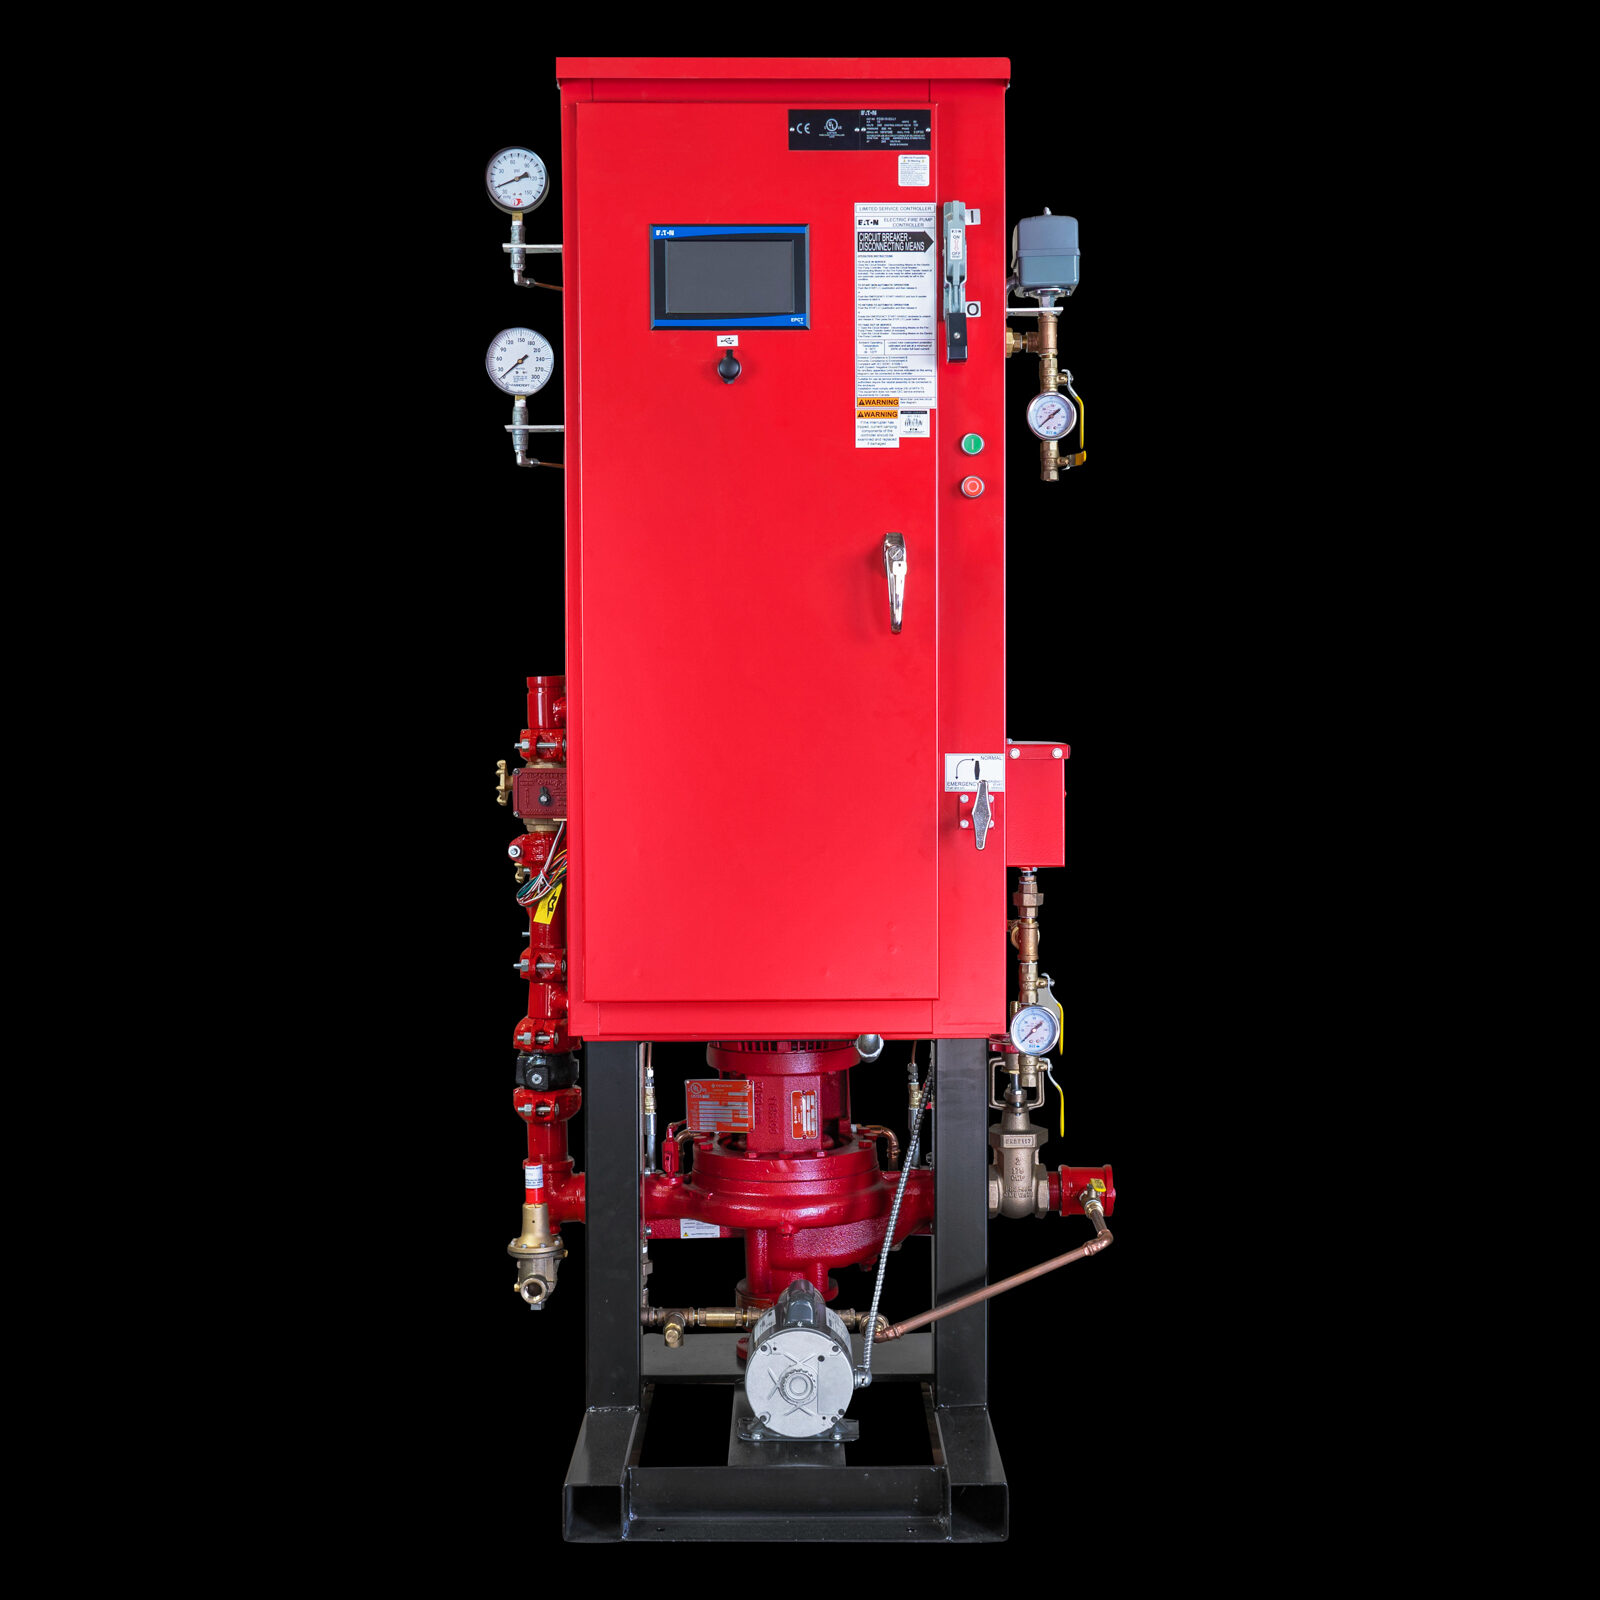 ULV100-Front (NFPA13R)